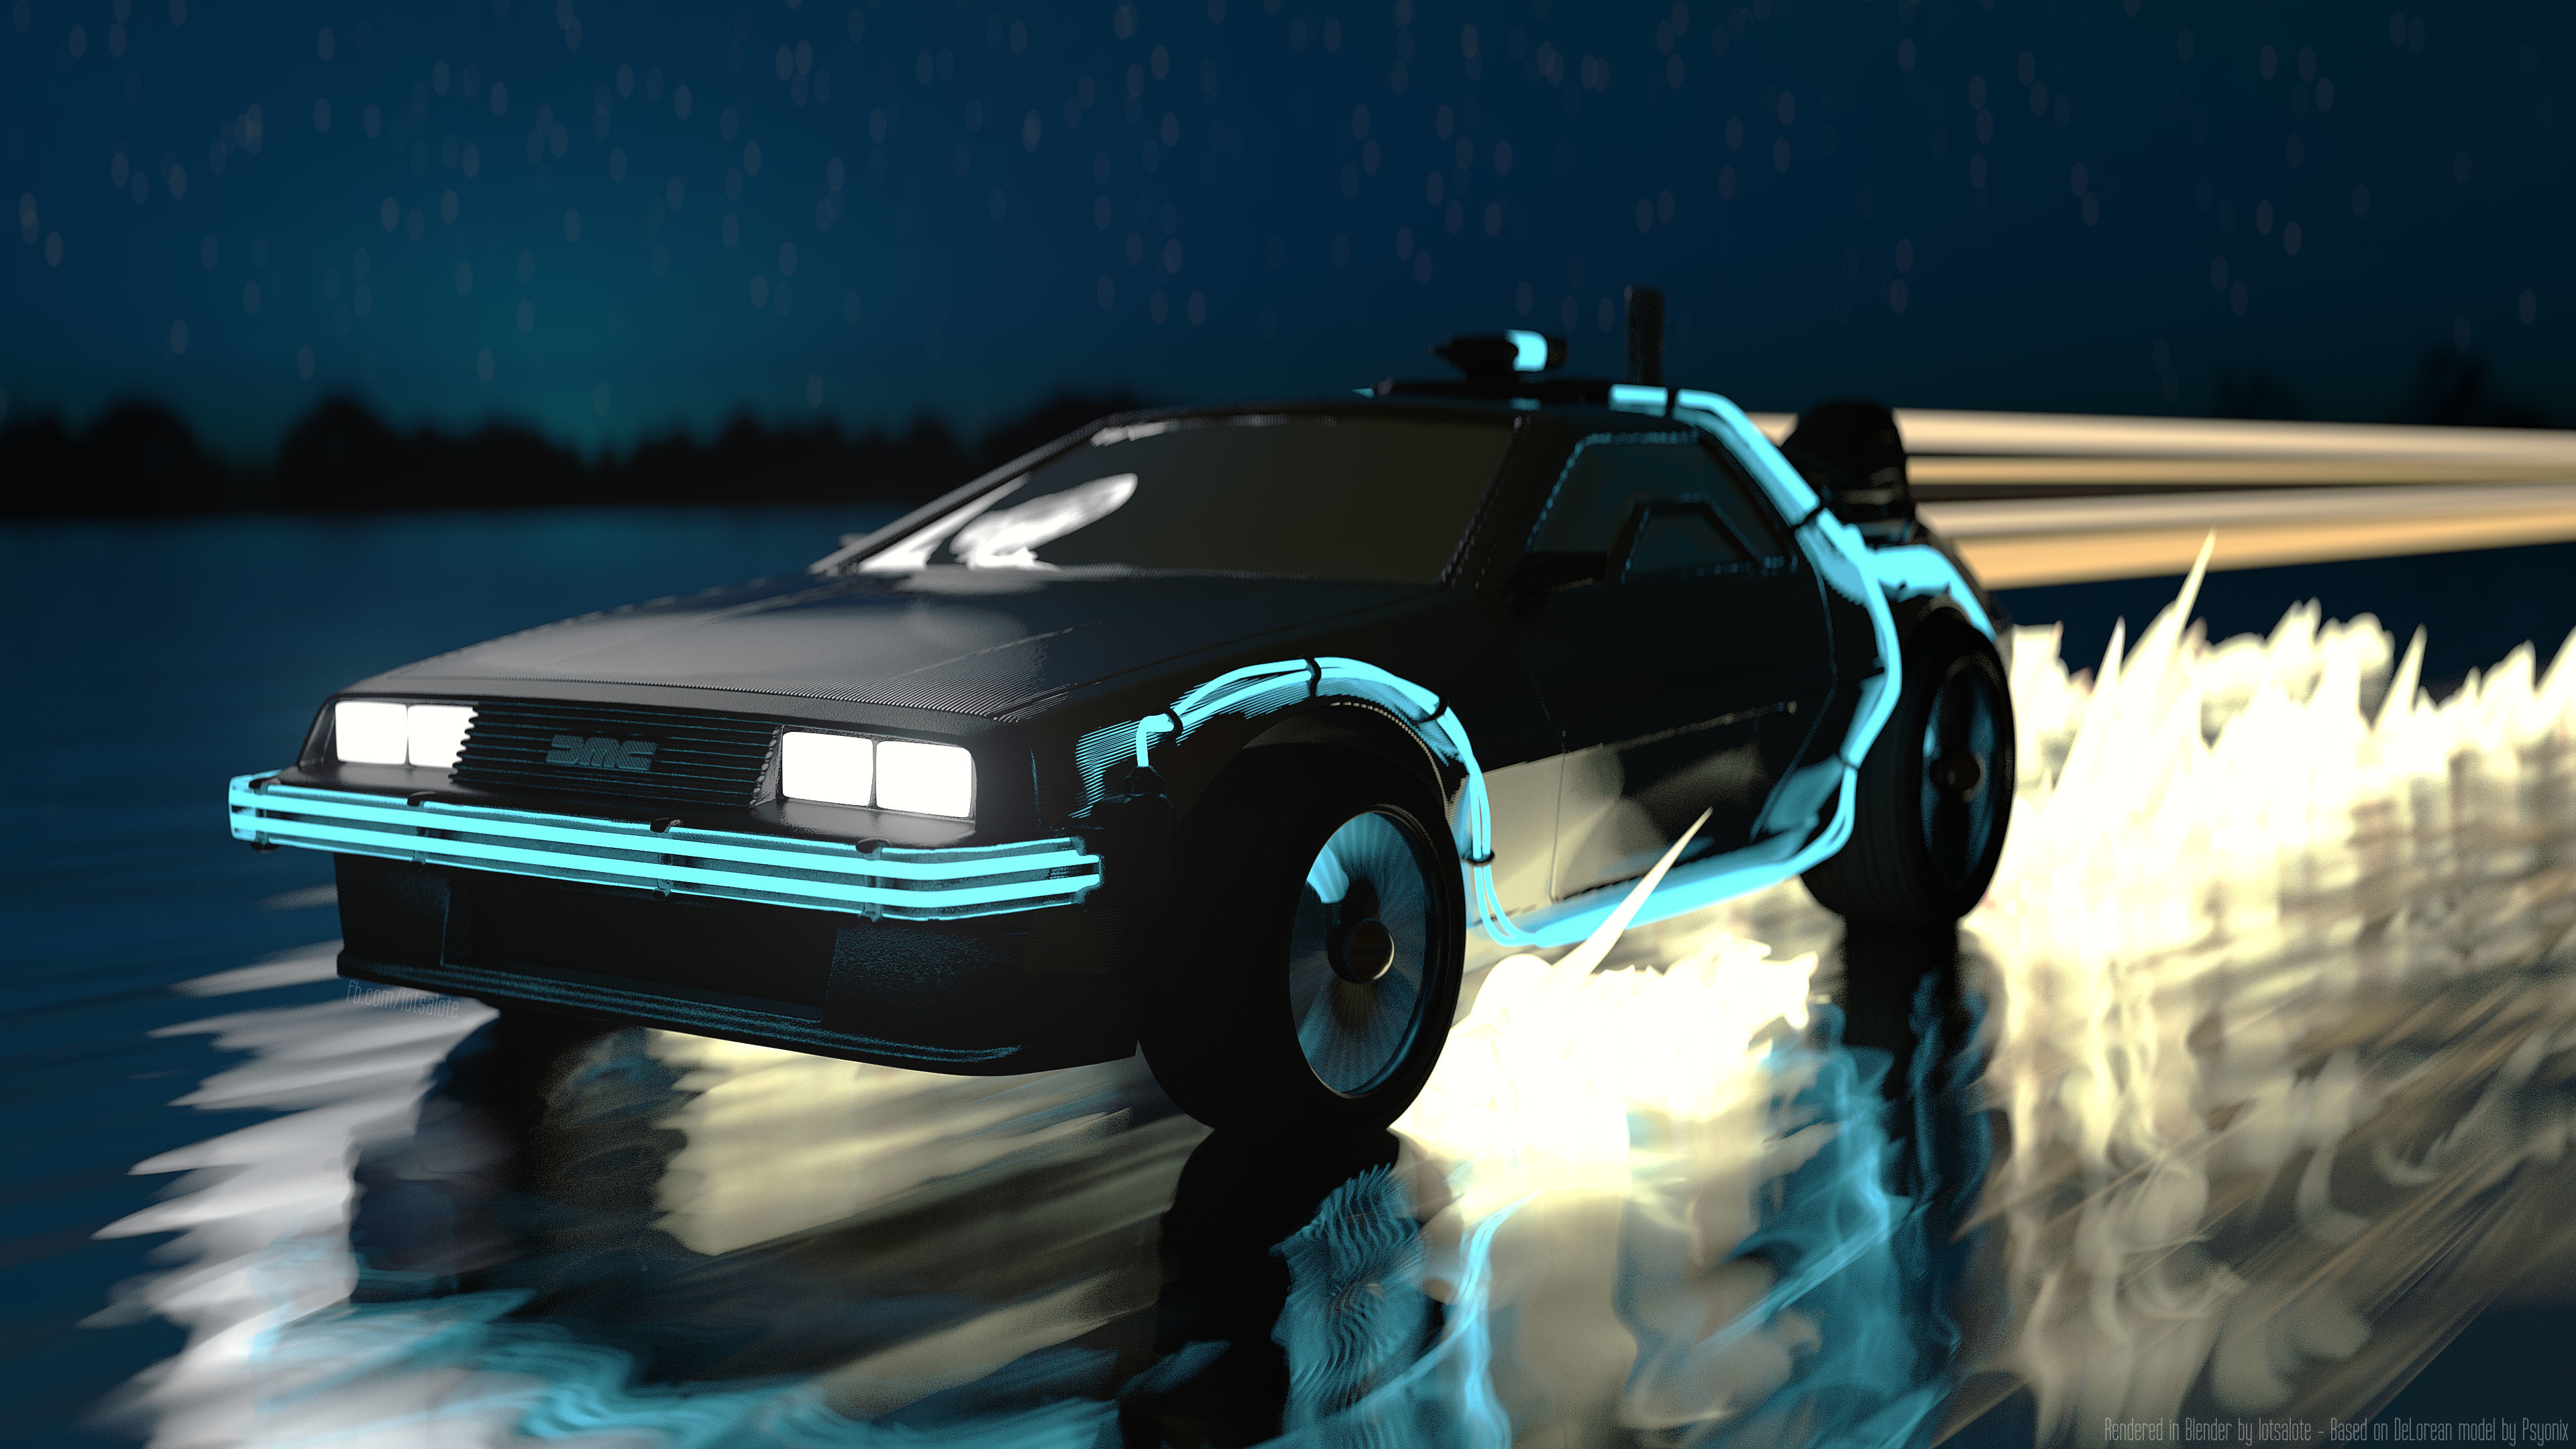 IMAGE/GIFI used the DeLorean model to make this 4K wallpaper. Hope you like  it!